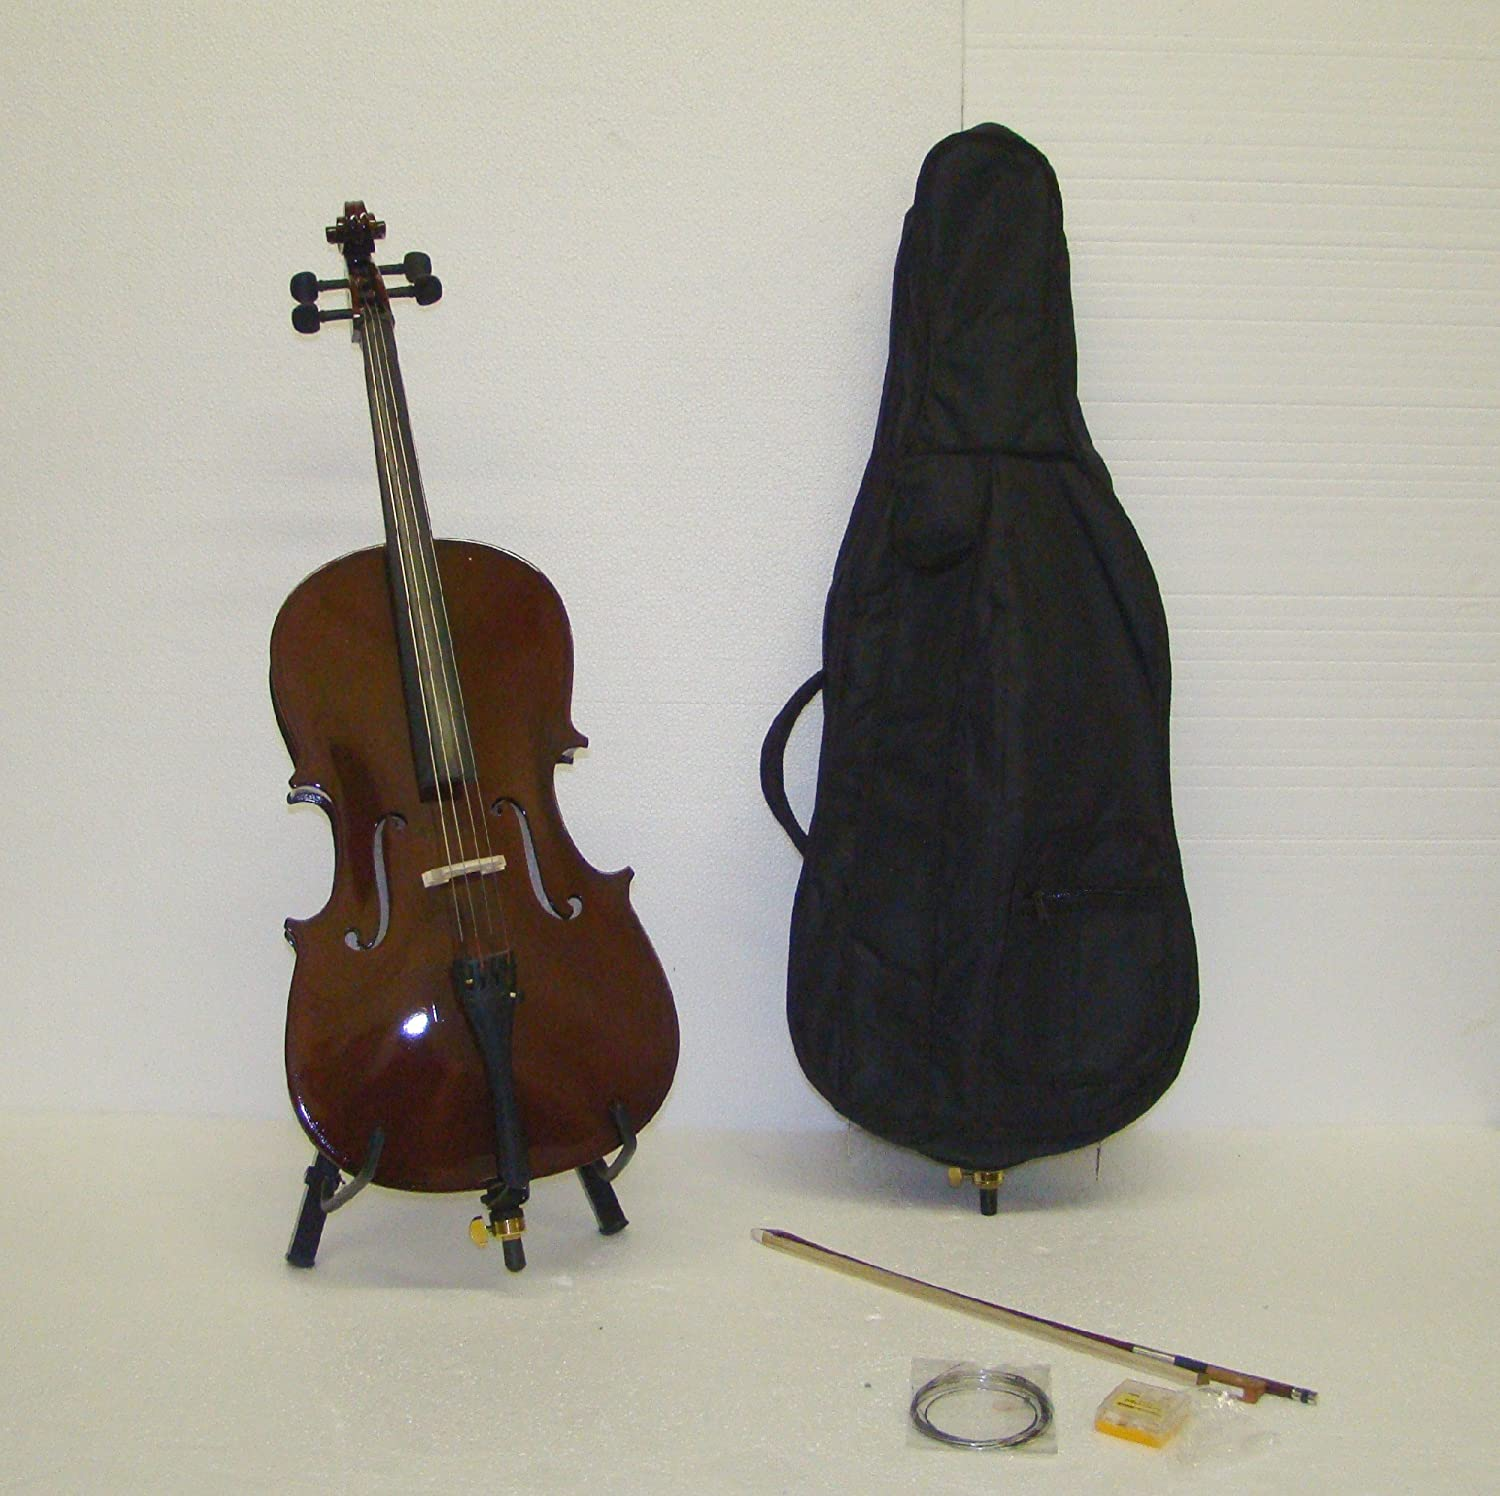 Crystalcello MC110 1/2 Size Cello with Carrying Bag + Bow + Accessories Merano MC110-2